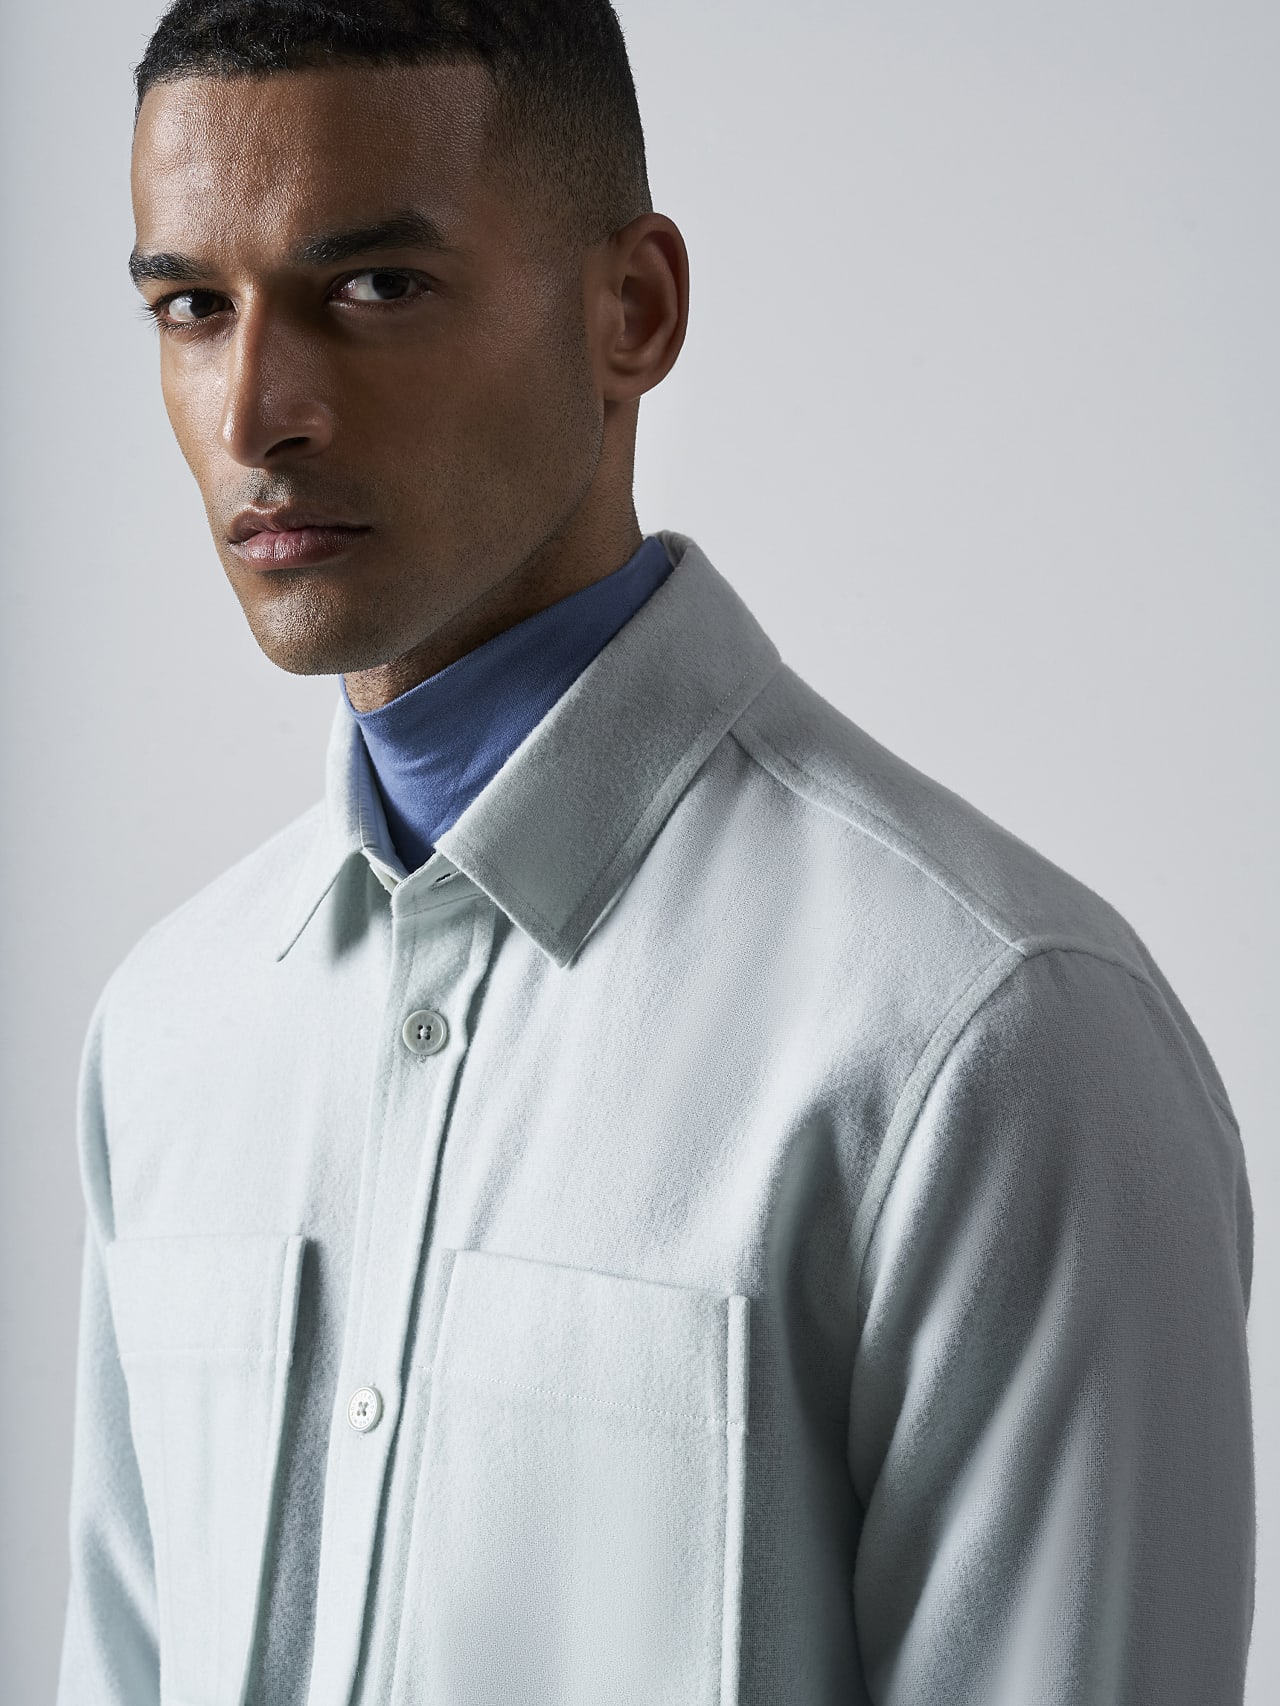 WOVER V1.Y5.02 Wool Over-Shirt Pale Blue  Right Alpha Tauri